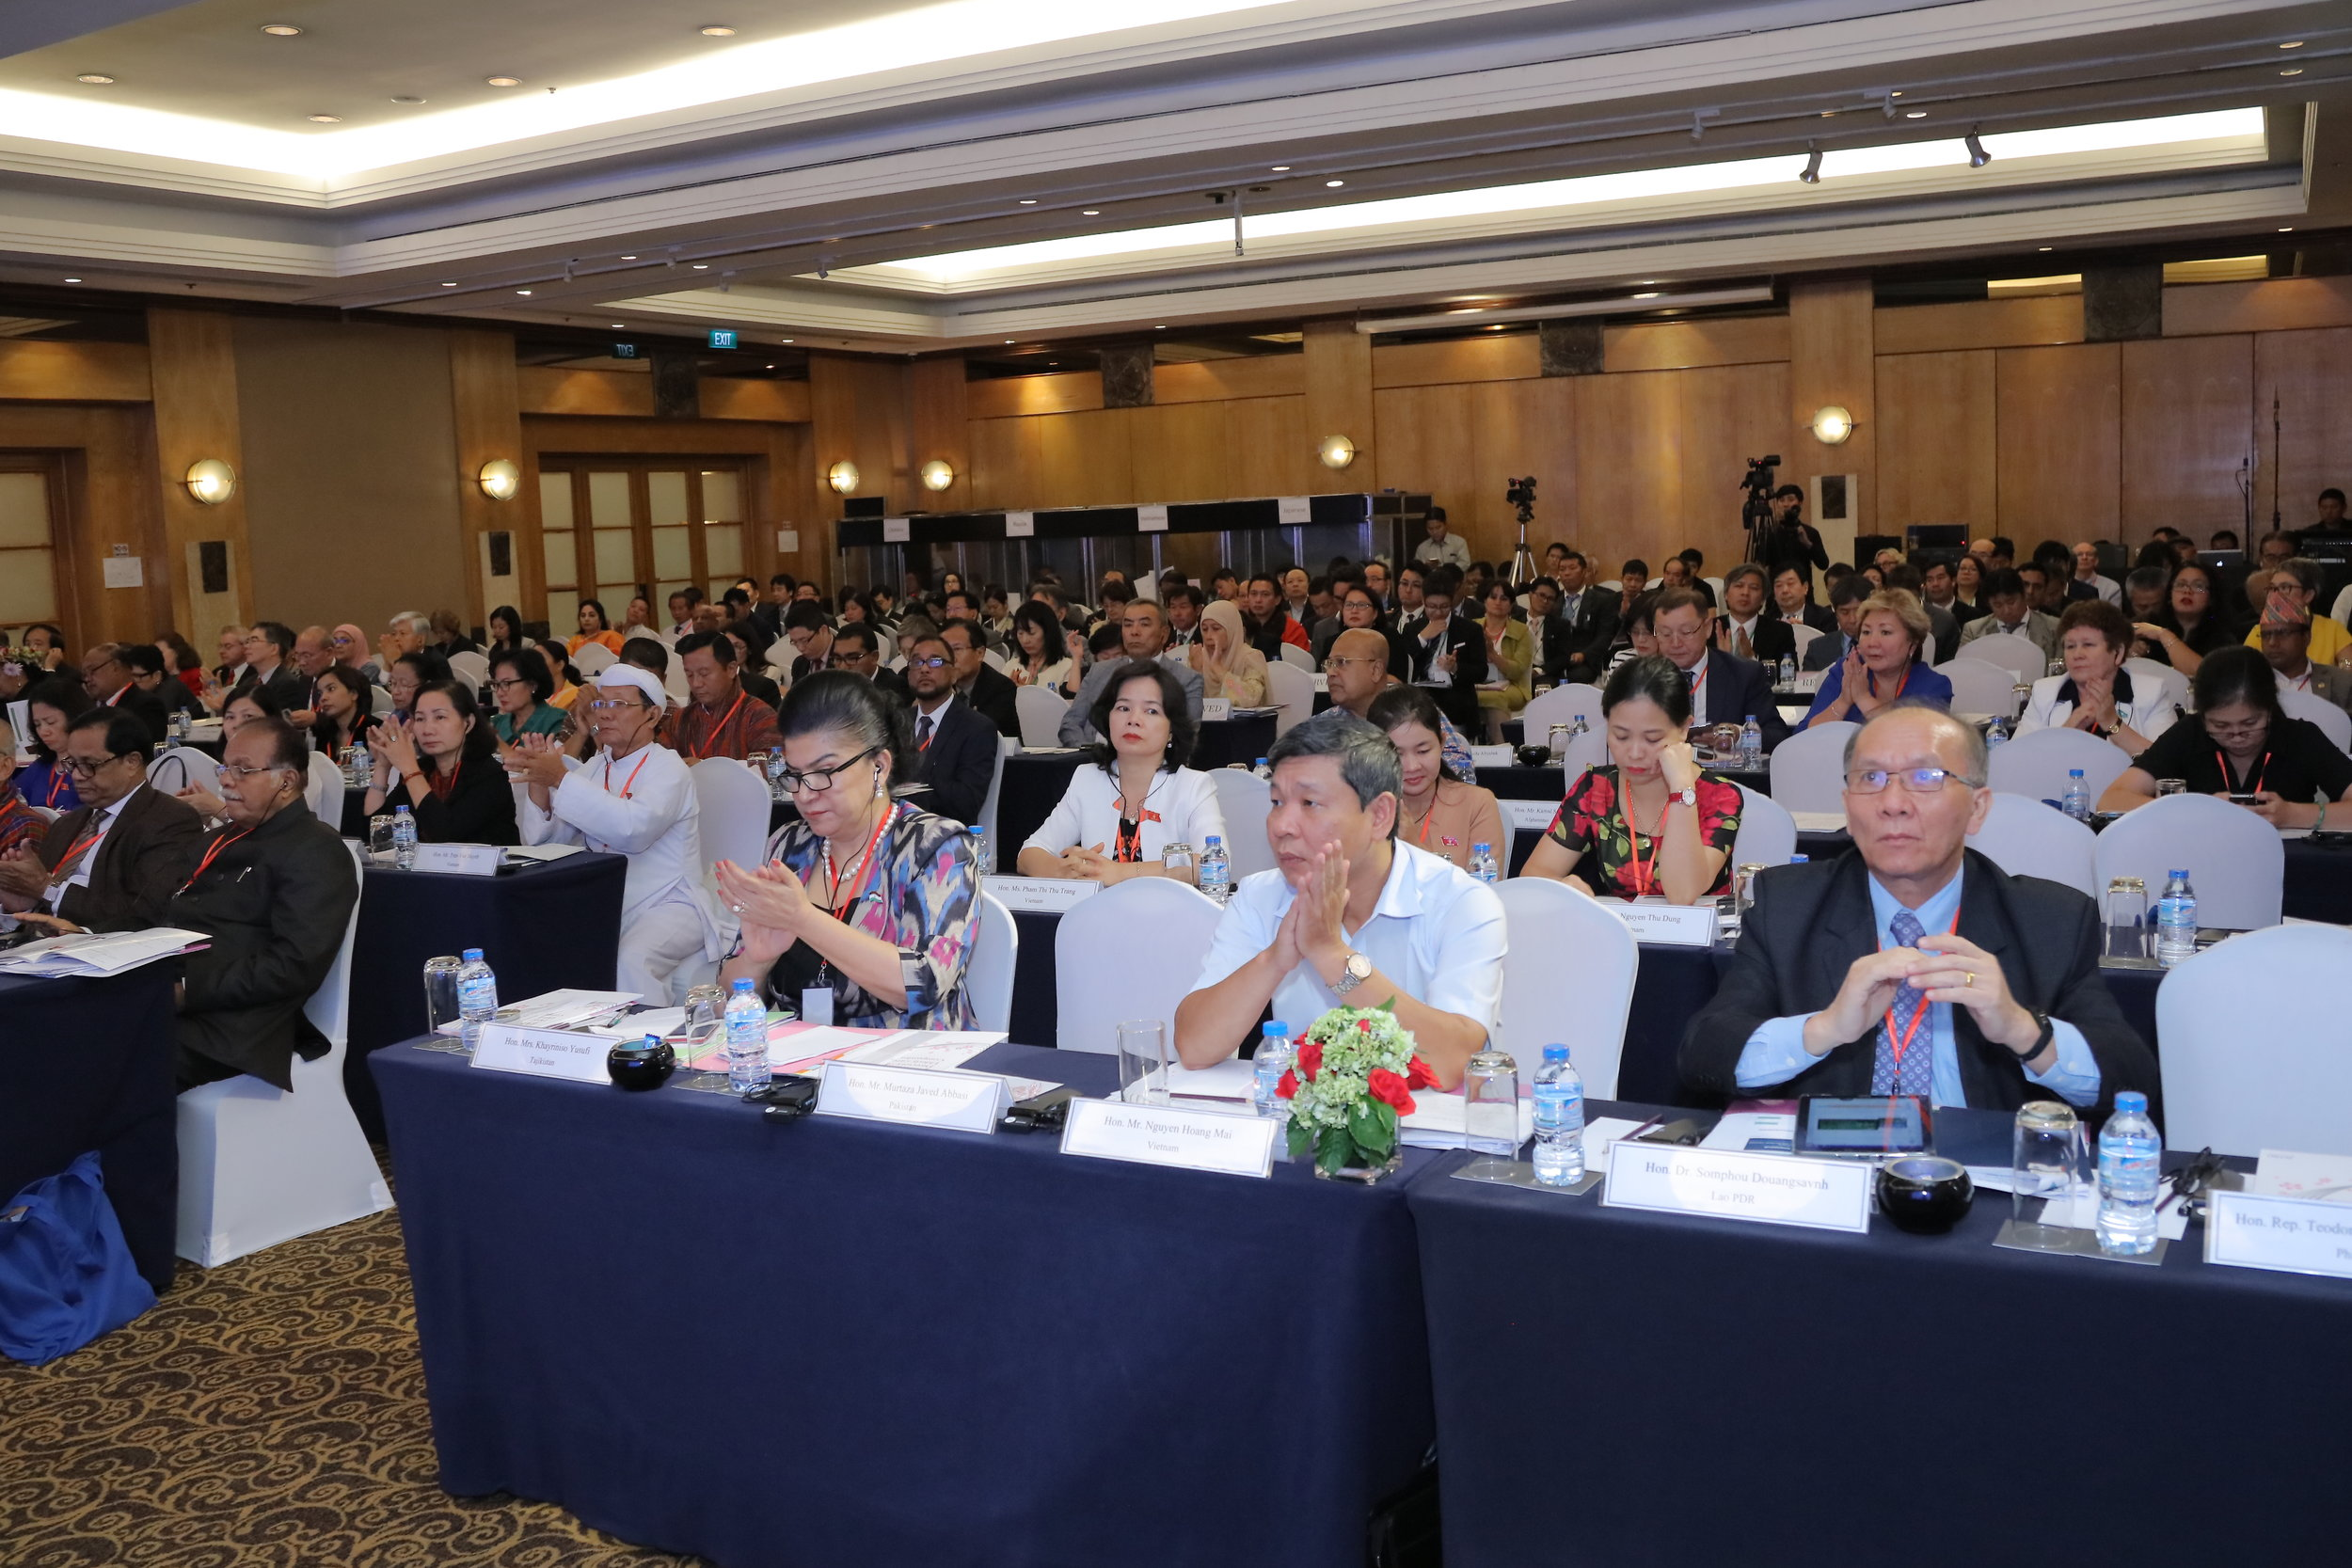 The event drew 260 people from 27 Asian economies